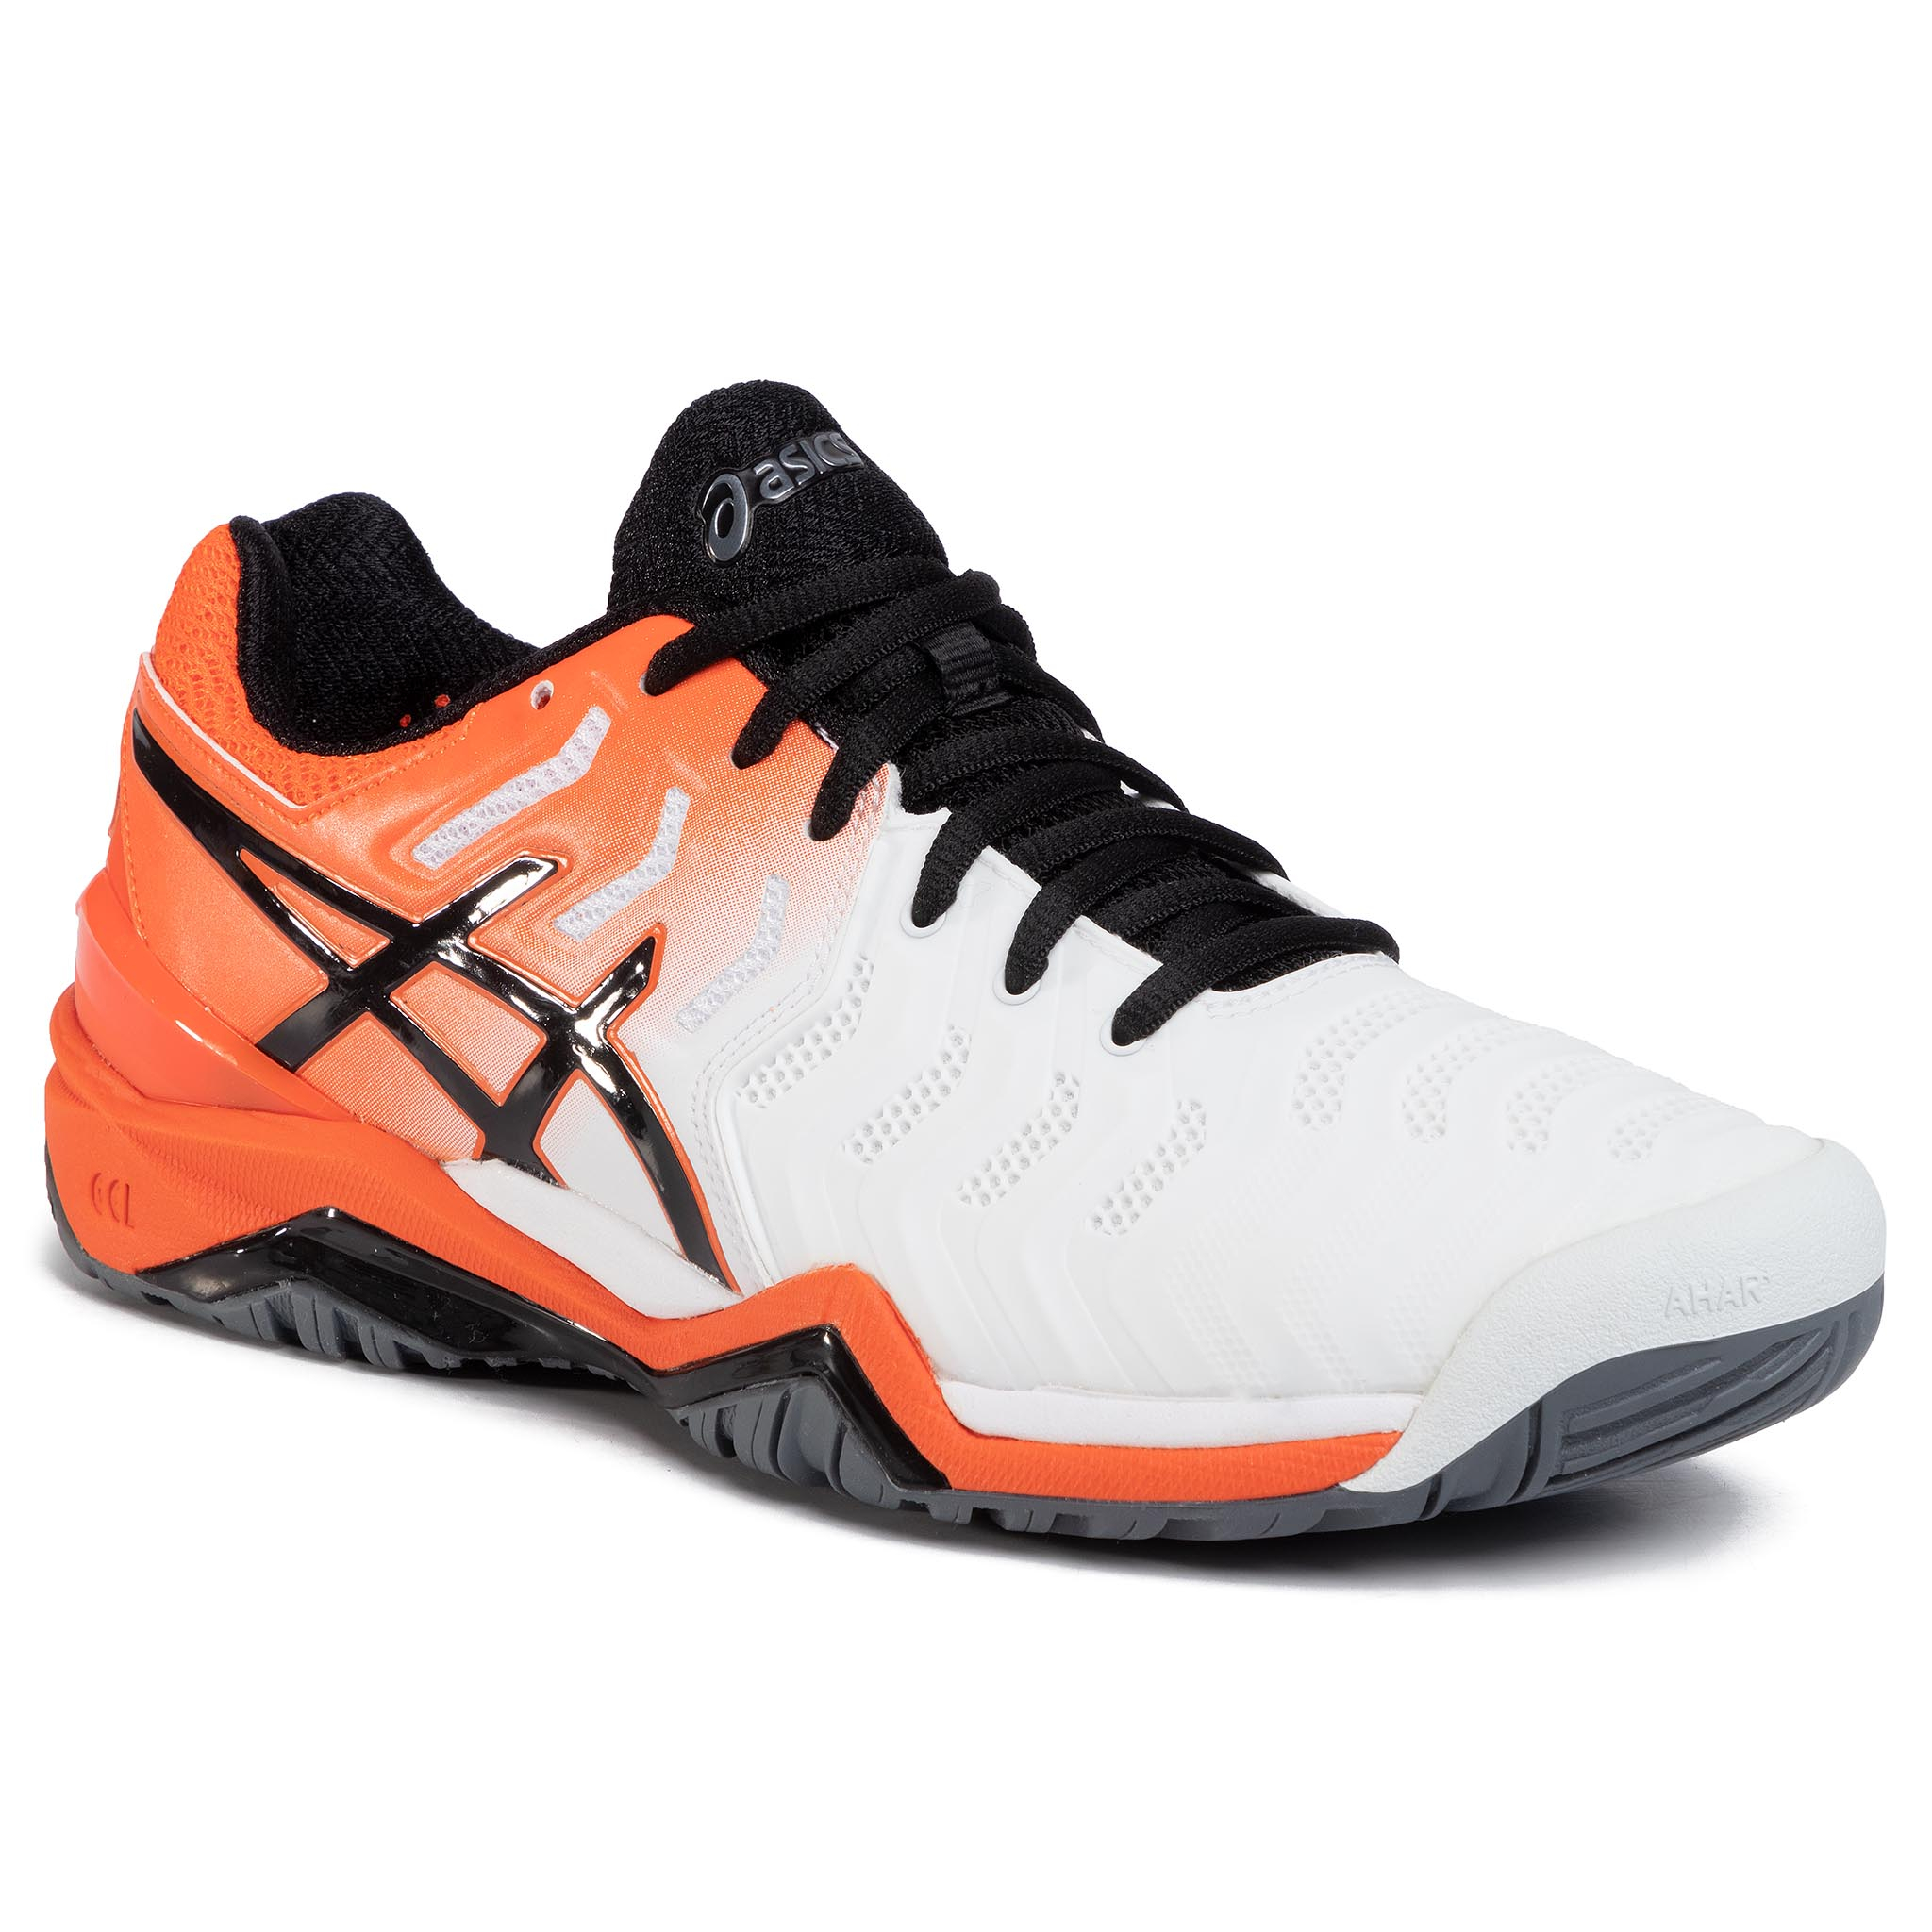 Pantofi Asics - Gel-Resolution 7 E701y White/Koi 100 imagine epantofi.ro 2021